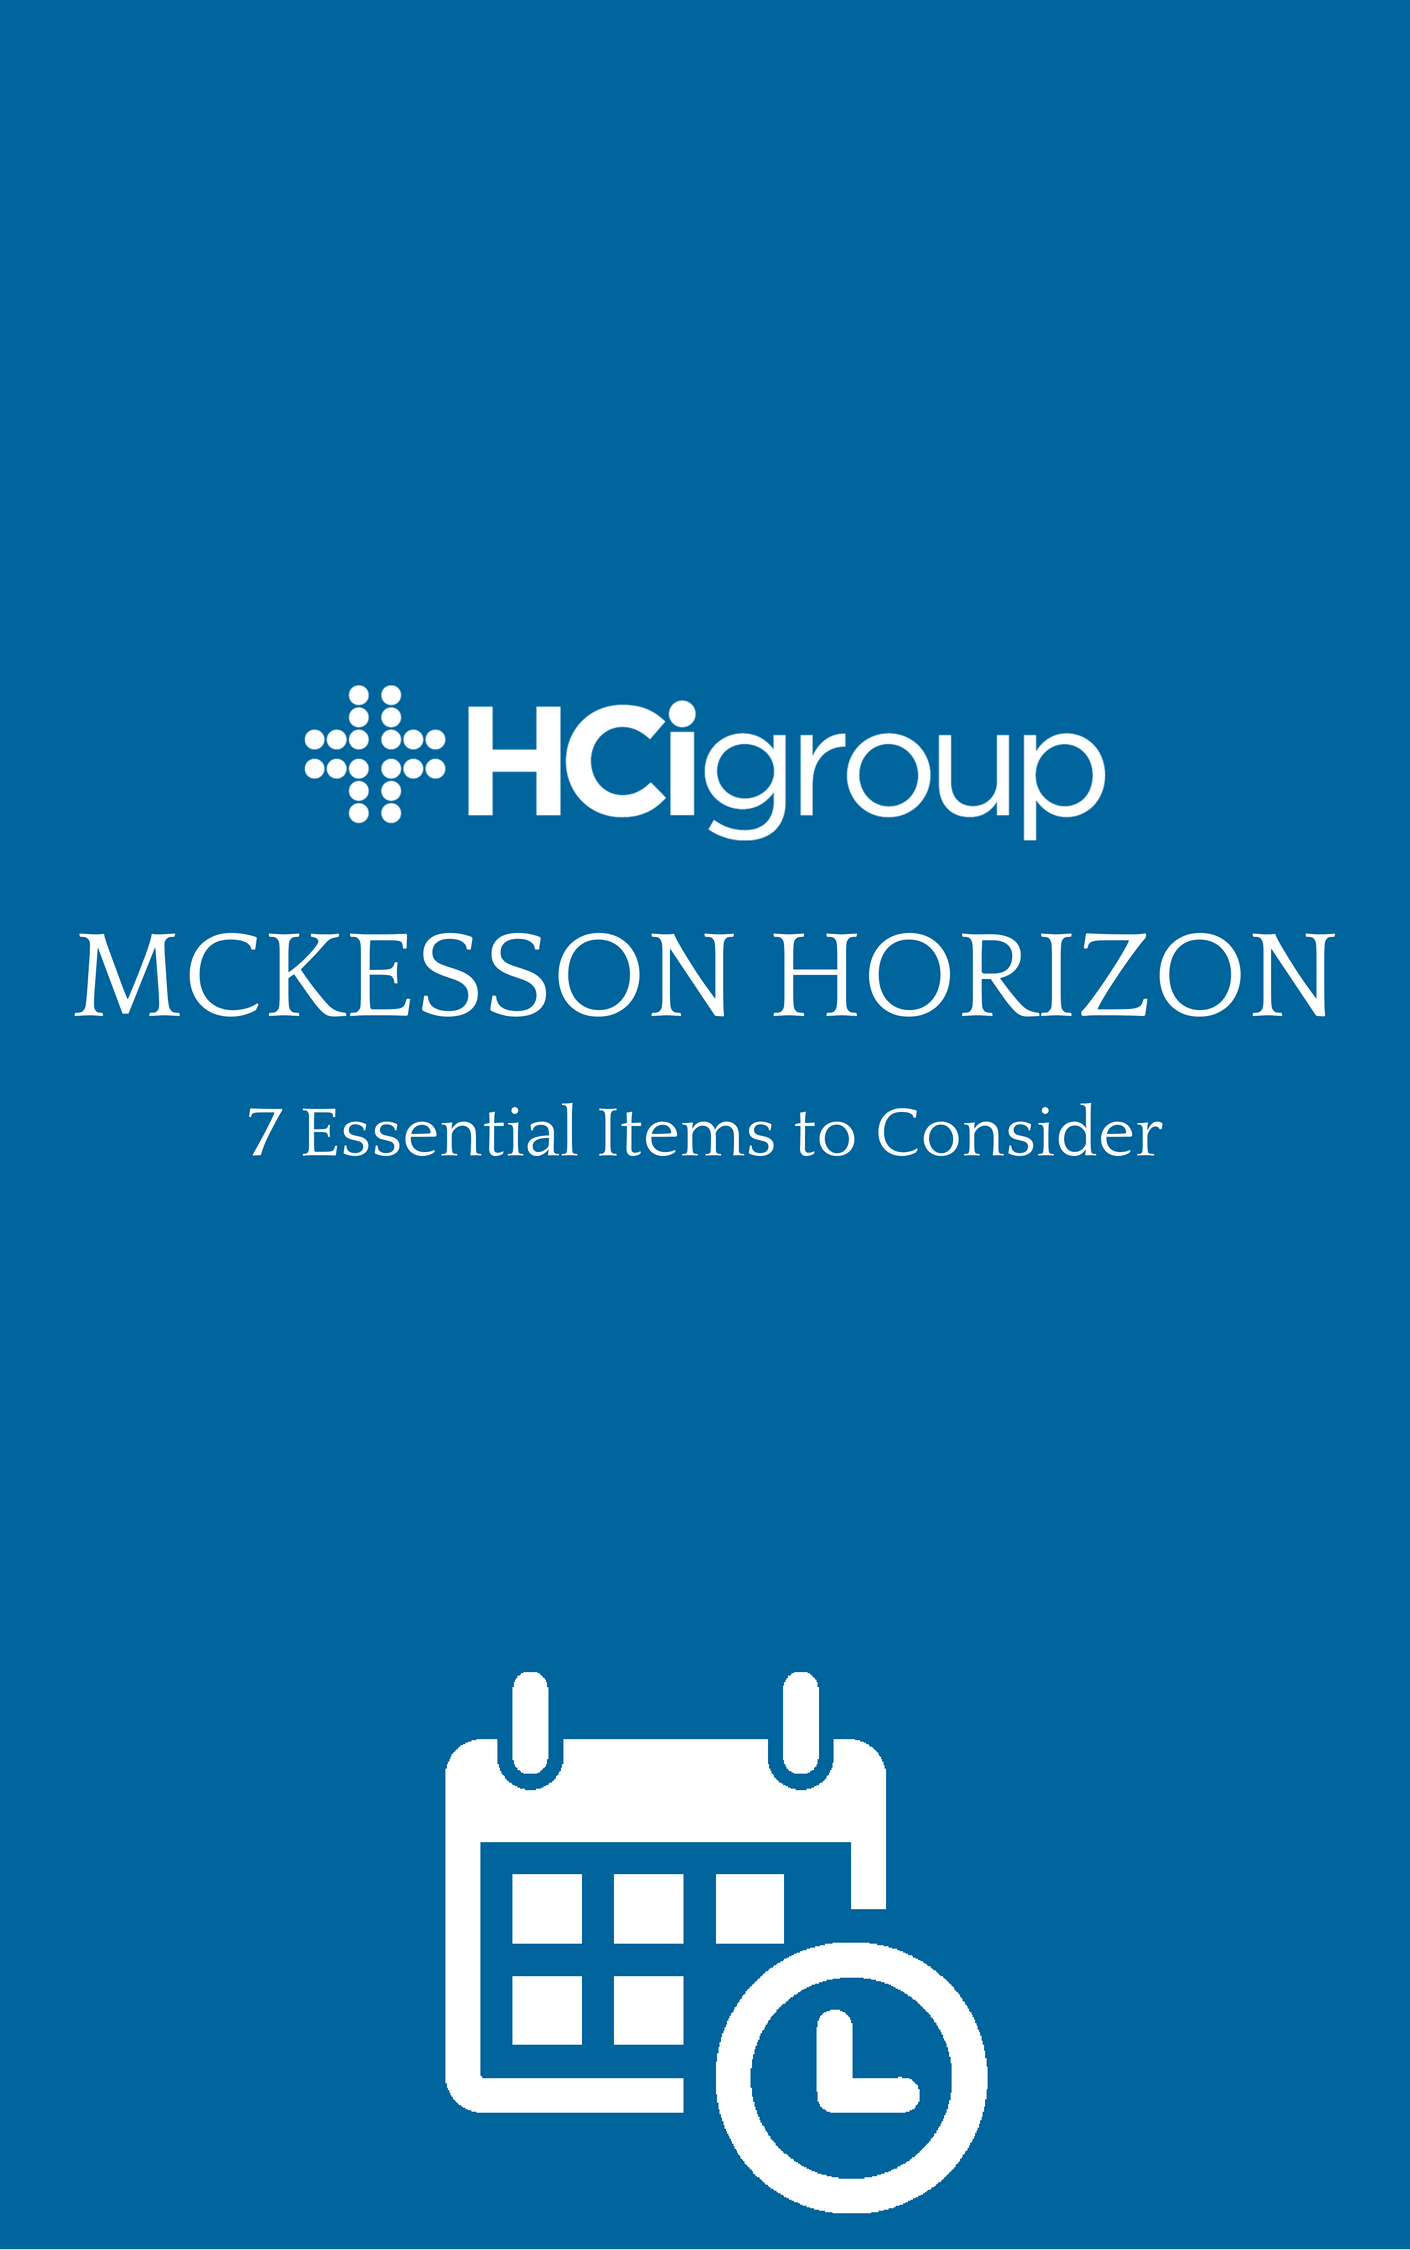 Download the McKesson Horizon Guide